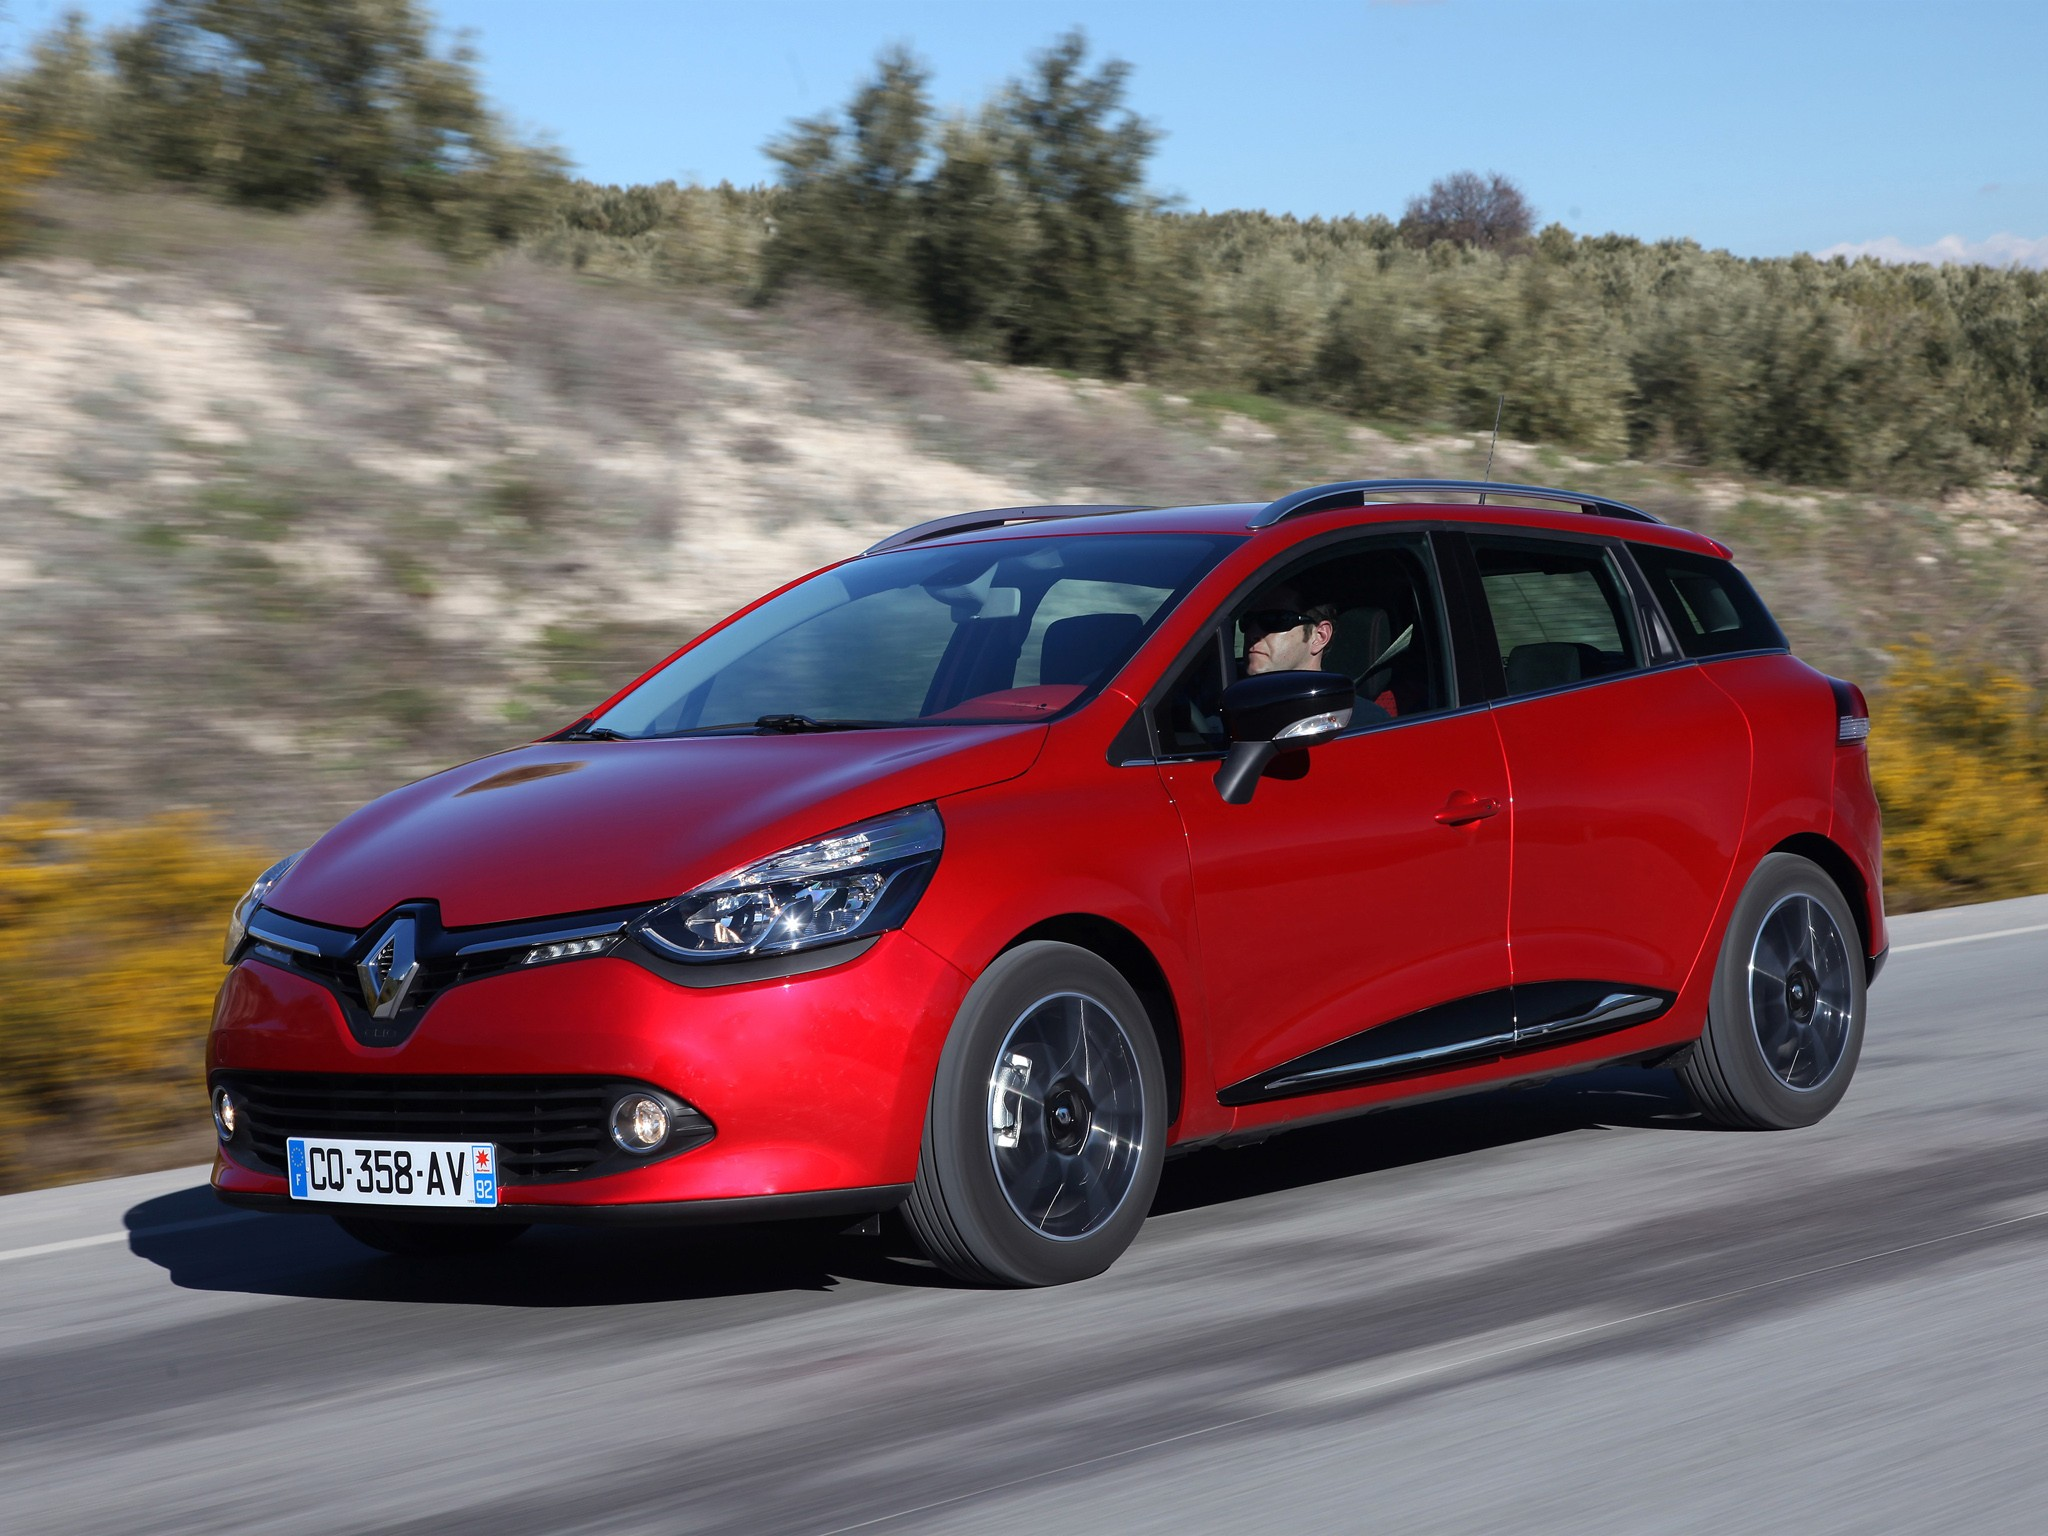 renault clio estate specs 2013 2014 2015 2016. Black Bedroom Furniture Sets. Home Design Ideas